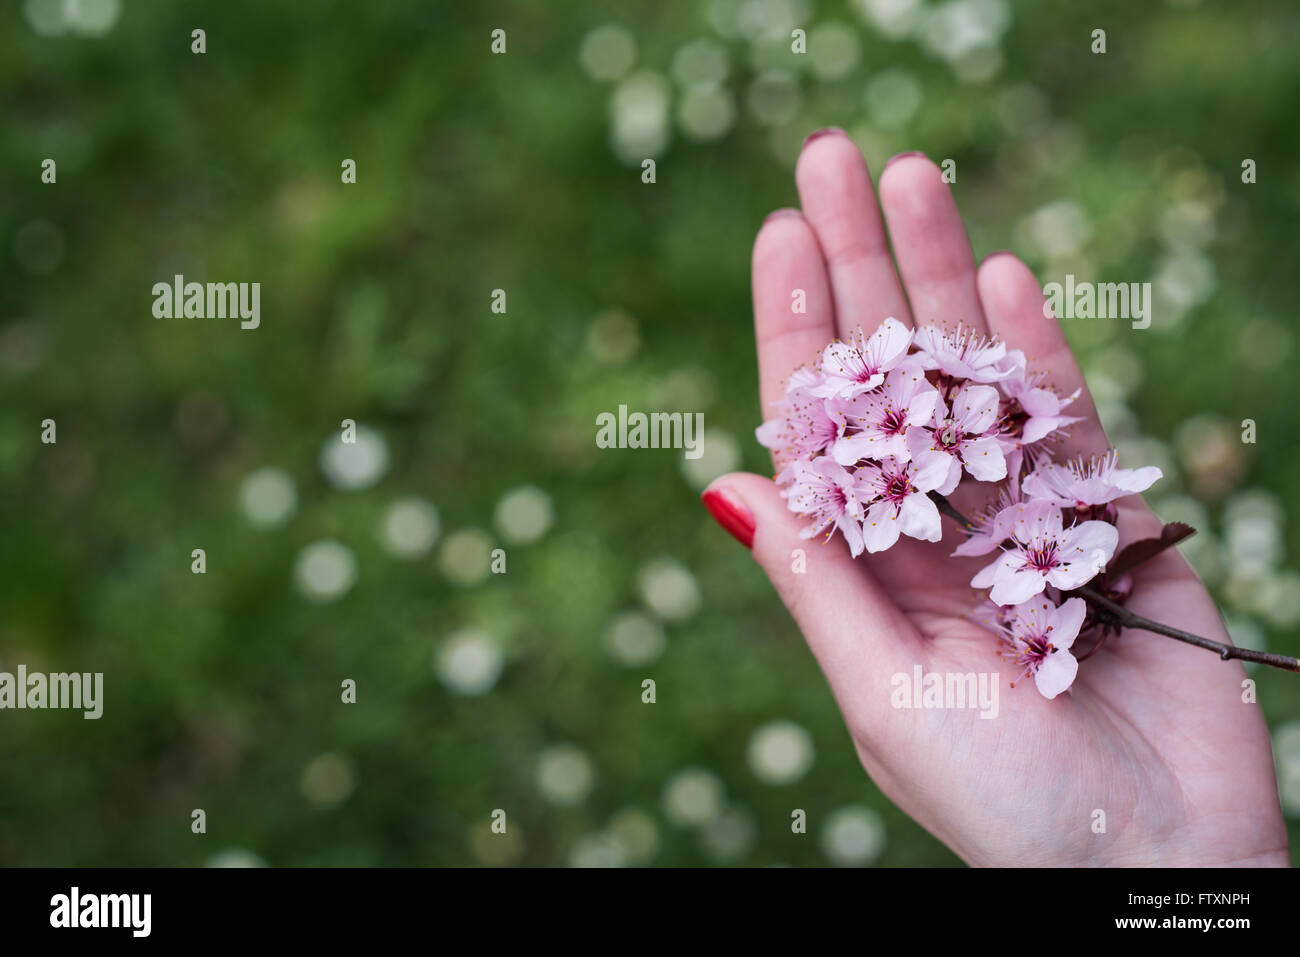 Woman holding pink cherry blossom flowers in her hand Stock Photo